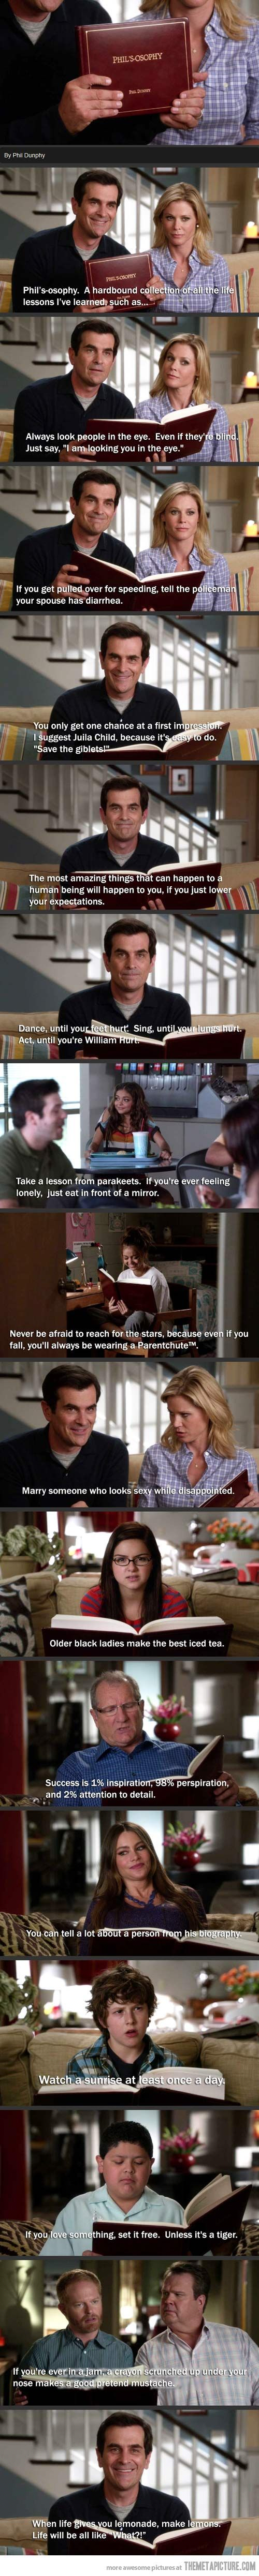 Phil'osophy  Modern Family. obsessed,